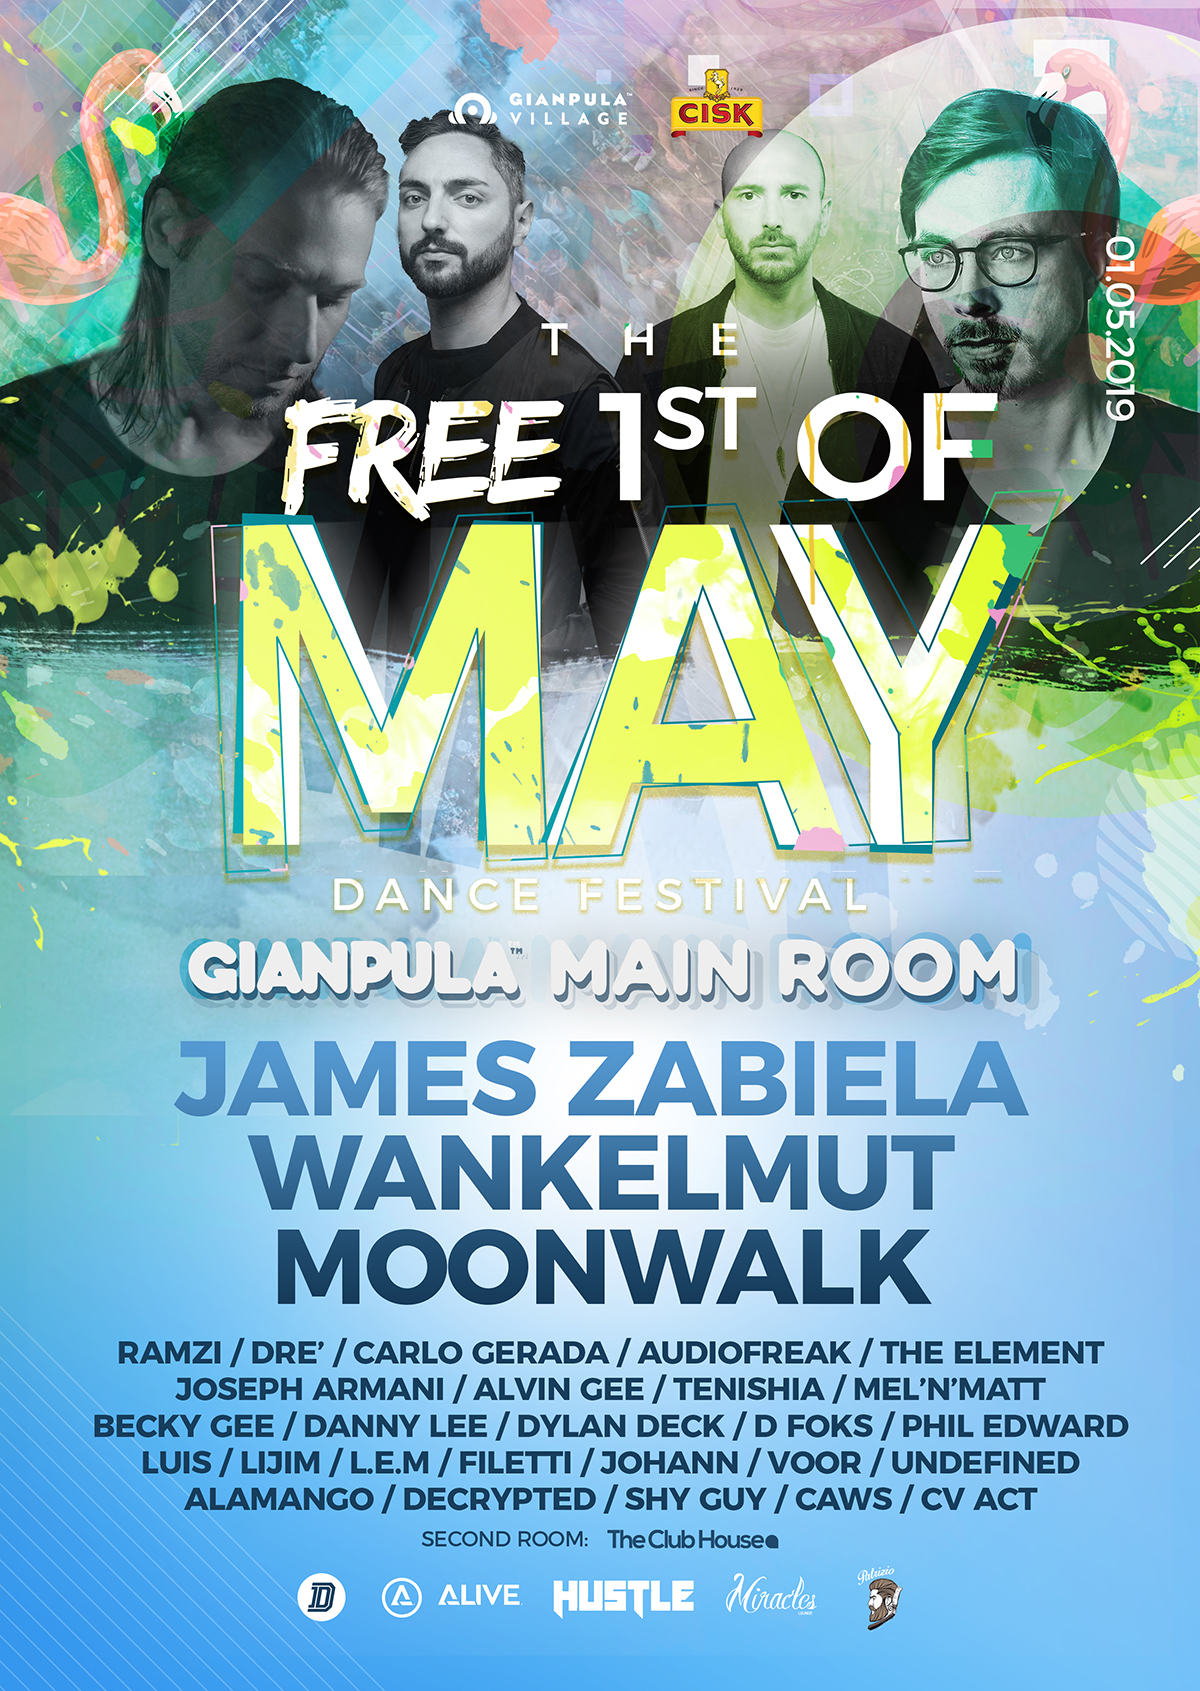 The Free 1st of May Dance Music Festival 2019 flyer